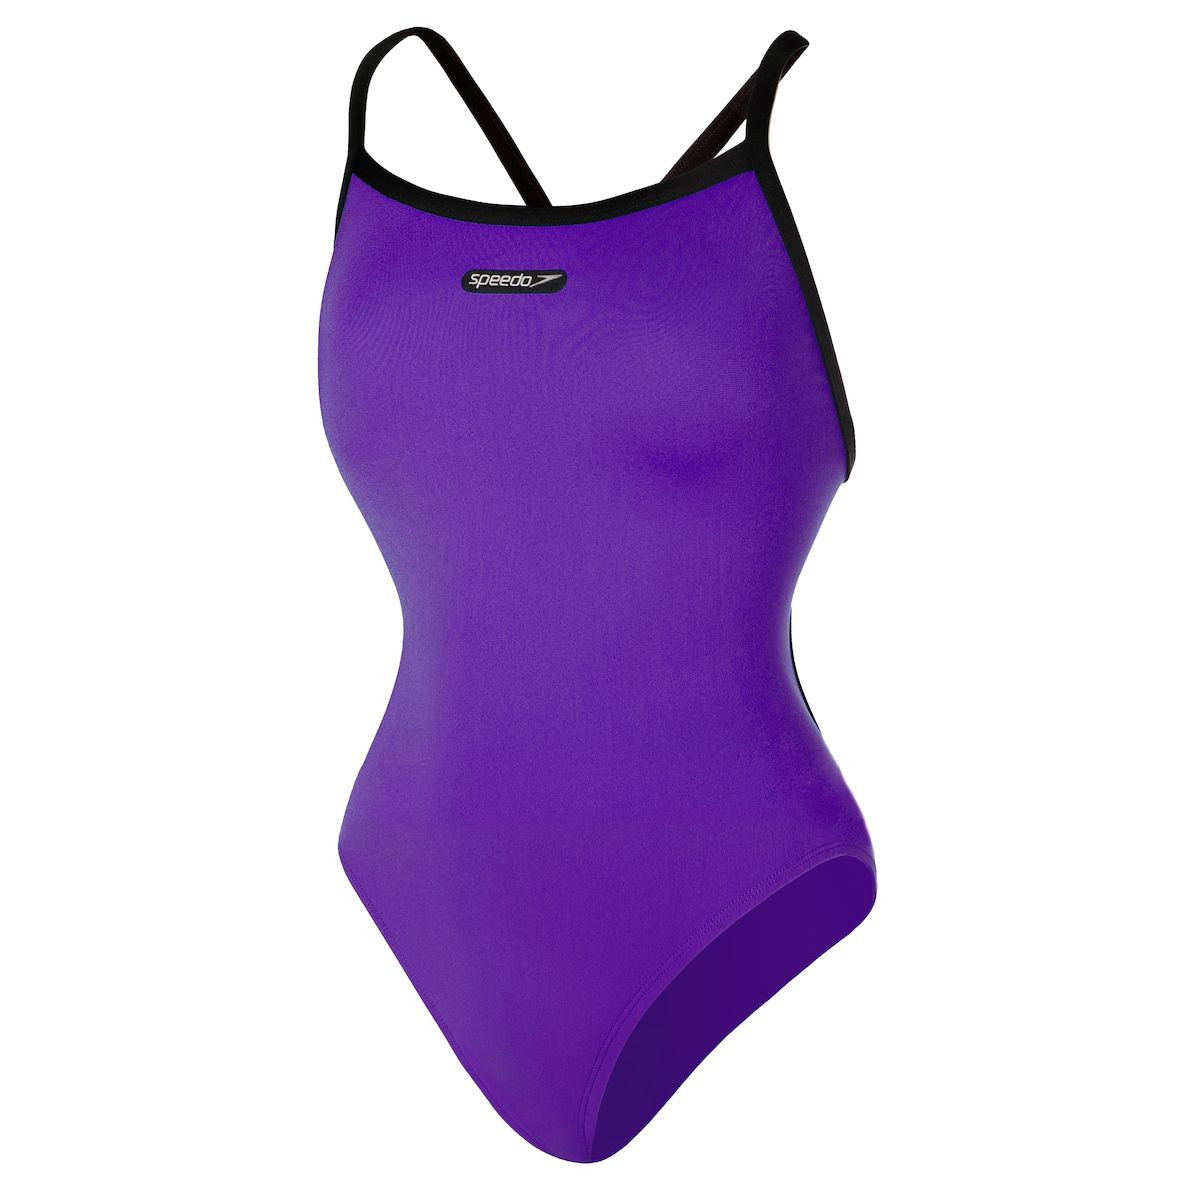 Speedo Women's Solid Flyback with Logo Patch Swimsuit - FINAL SALE